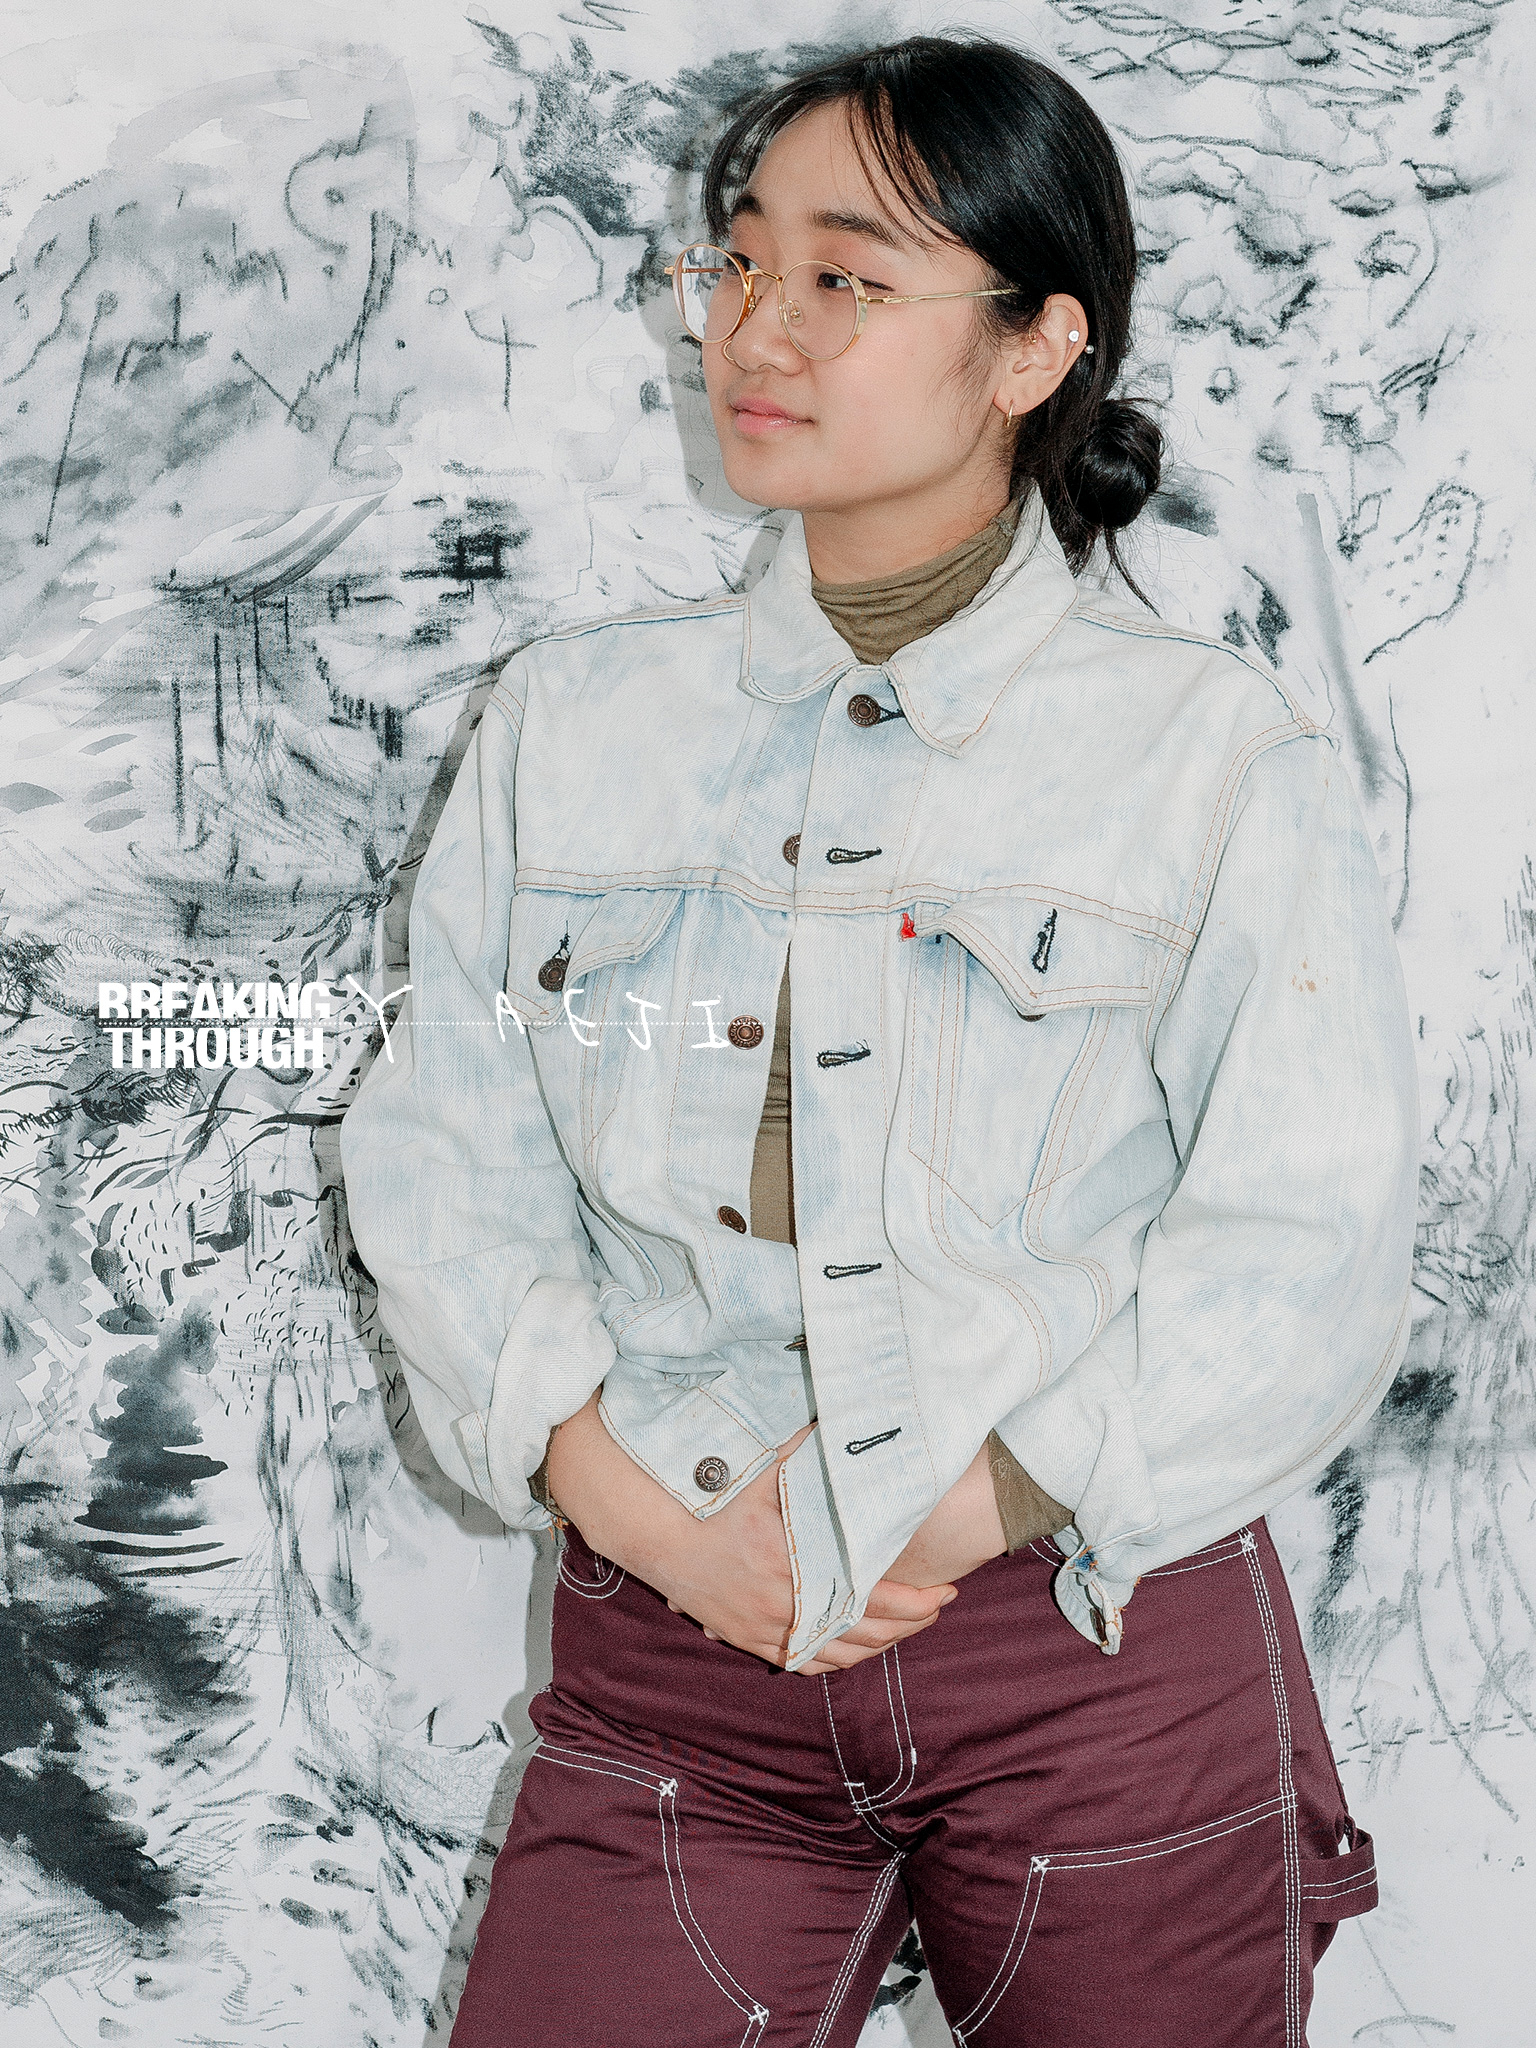 Breaking Through: Yaeji